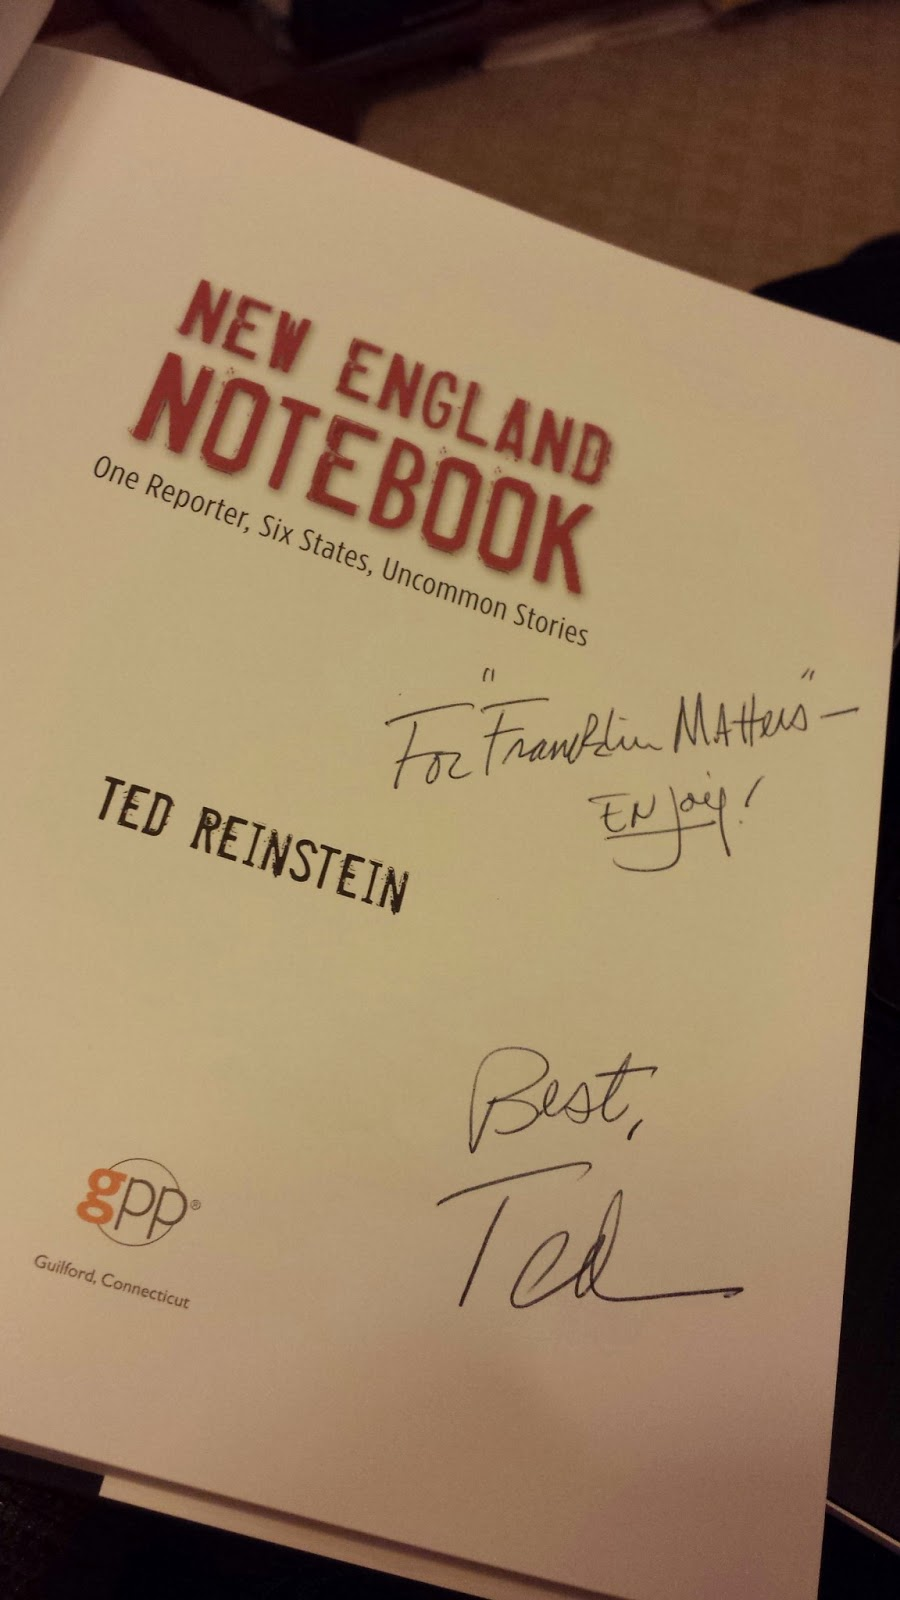 my signed copy of New England Notebook